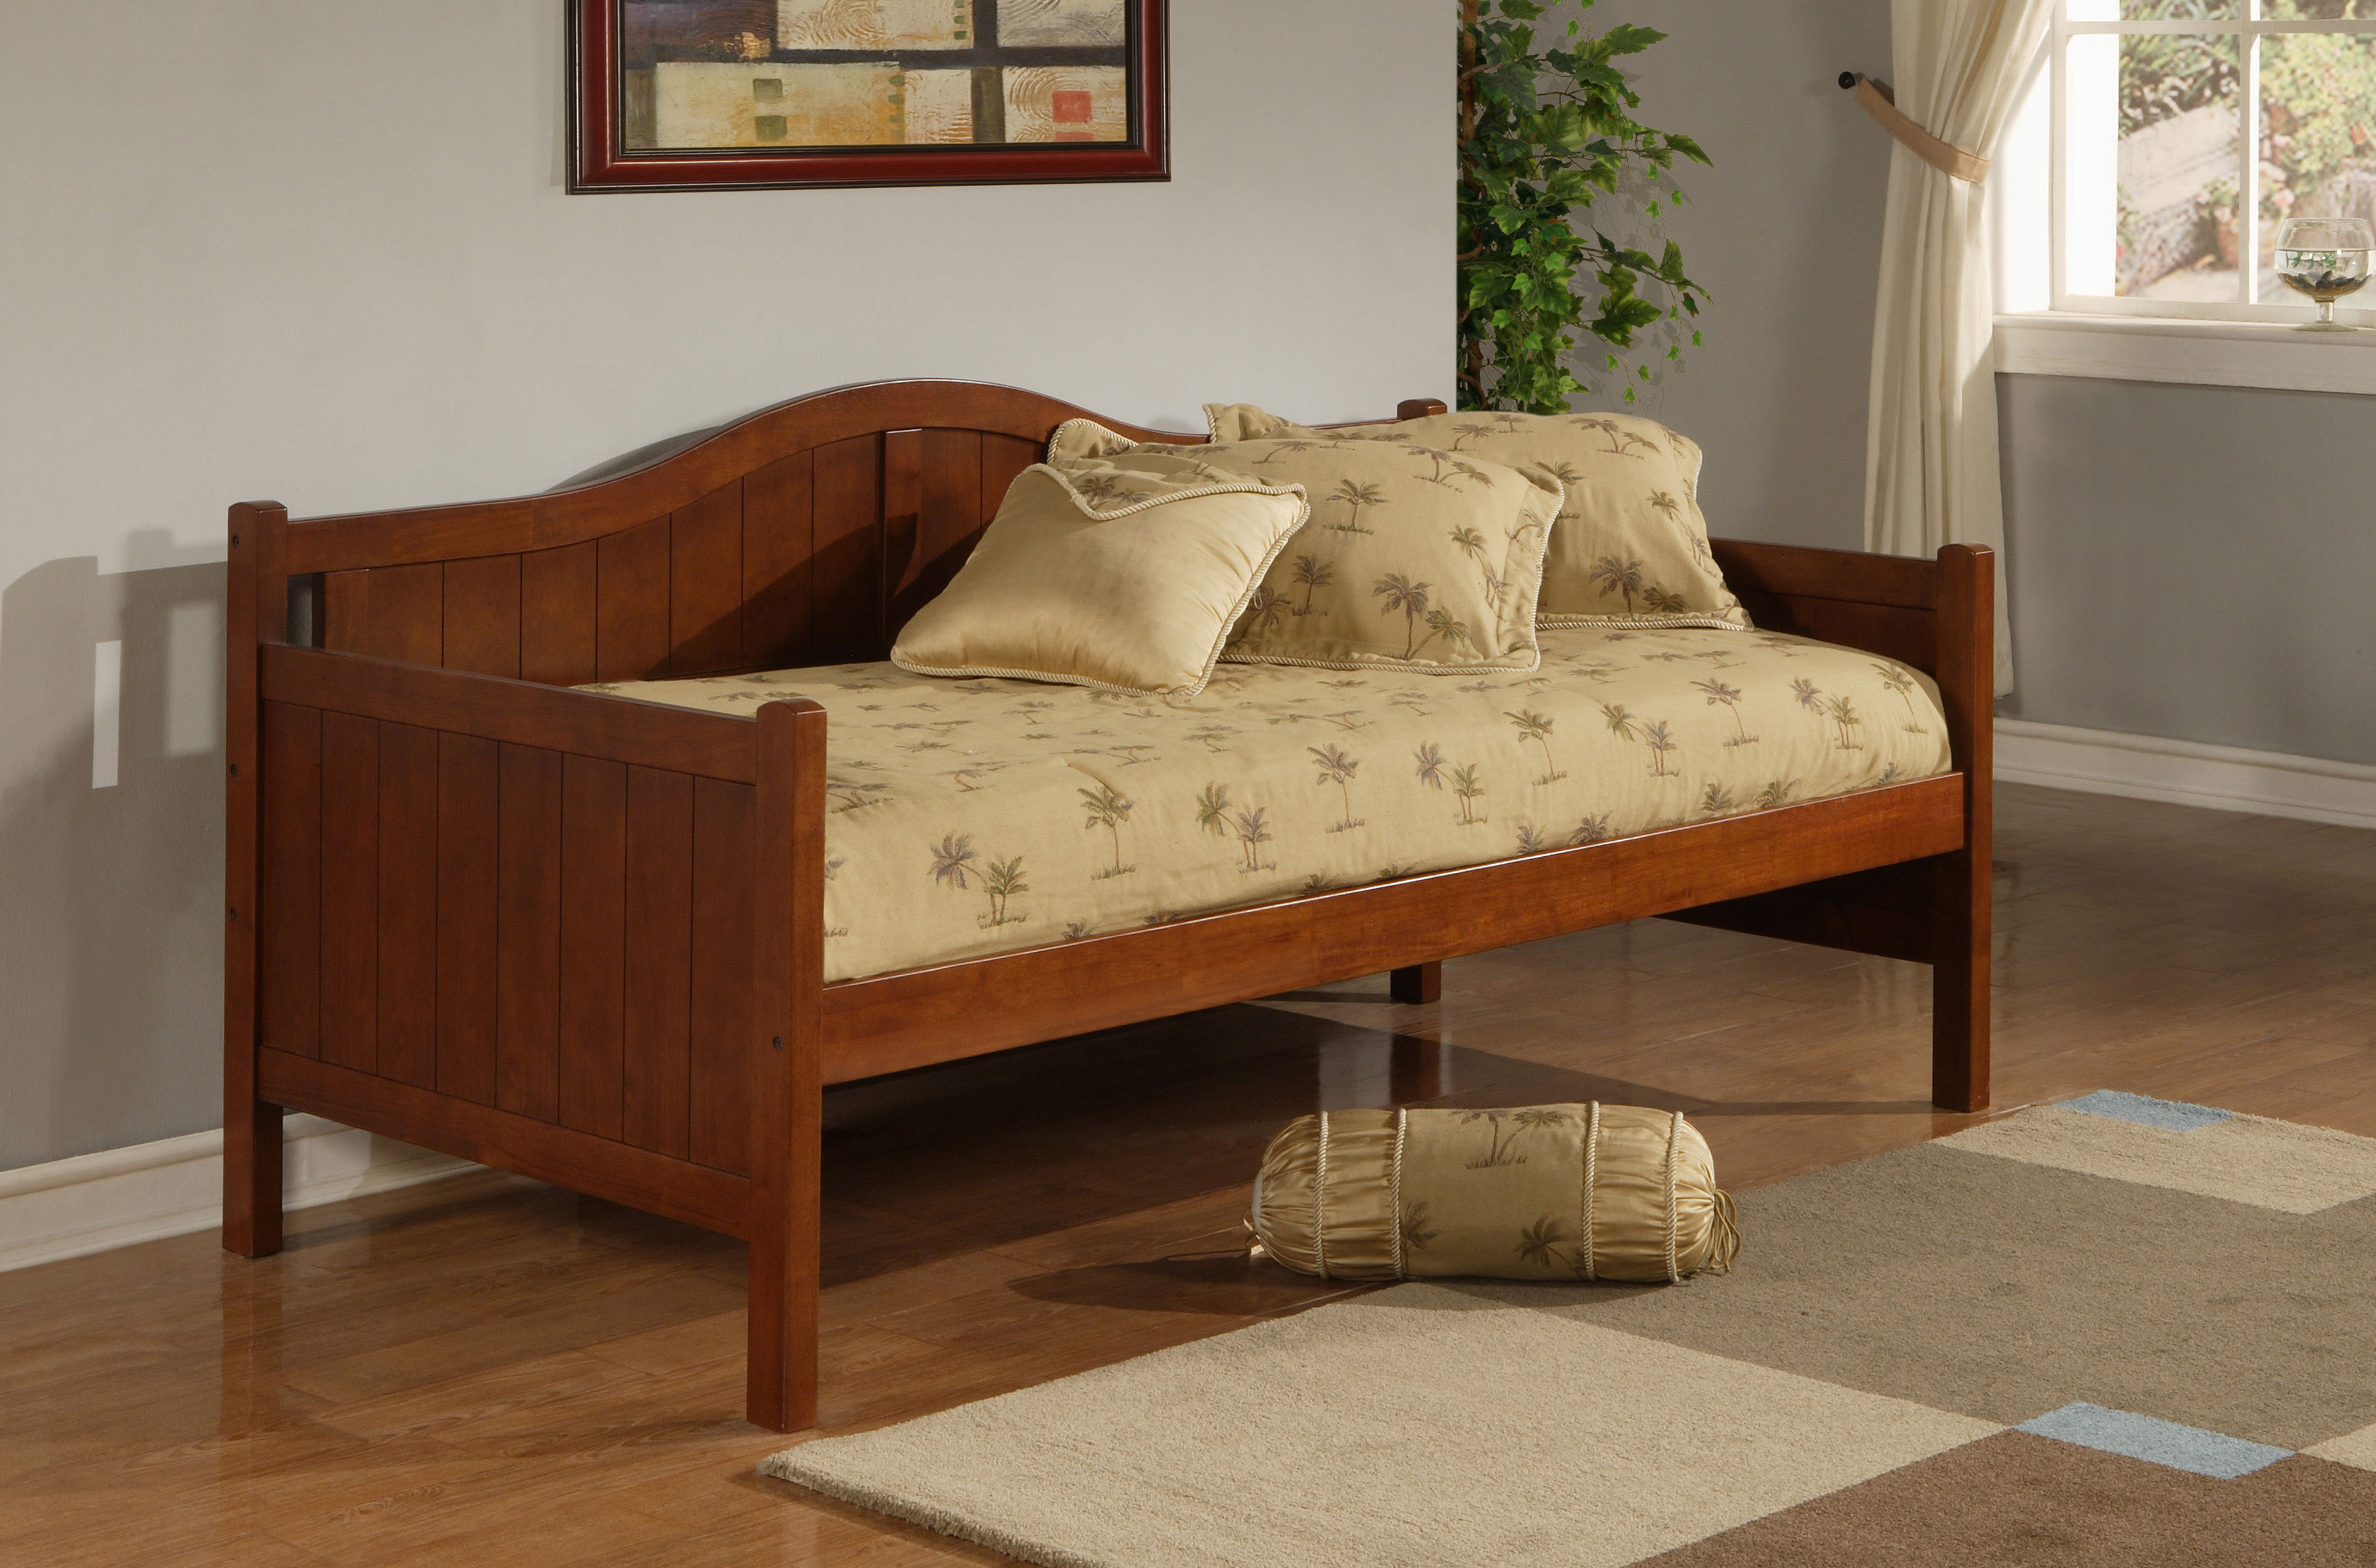 mesmerizing queen daybed with laminate flooring